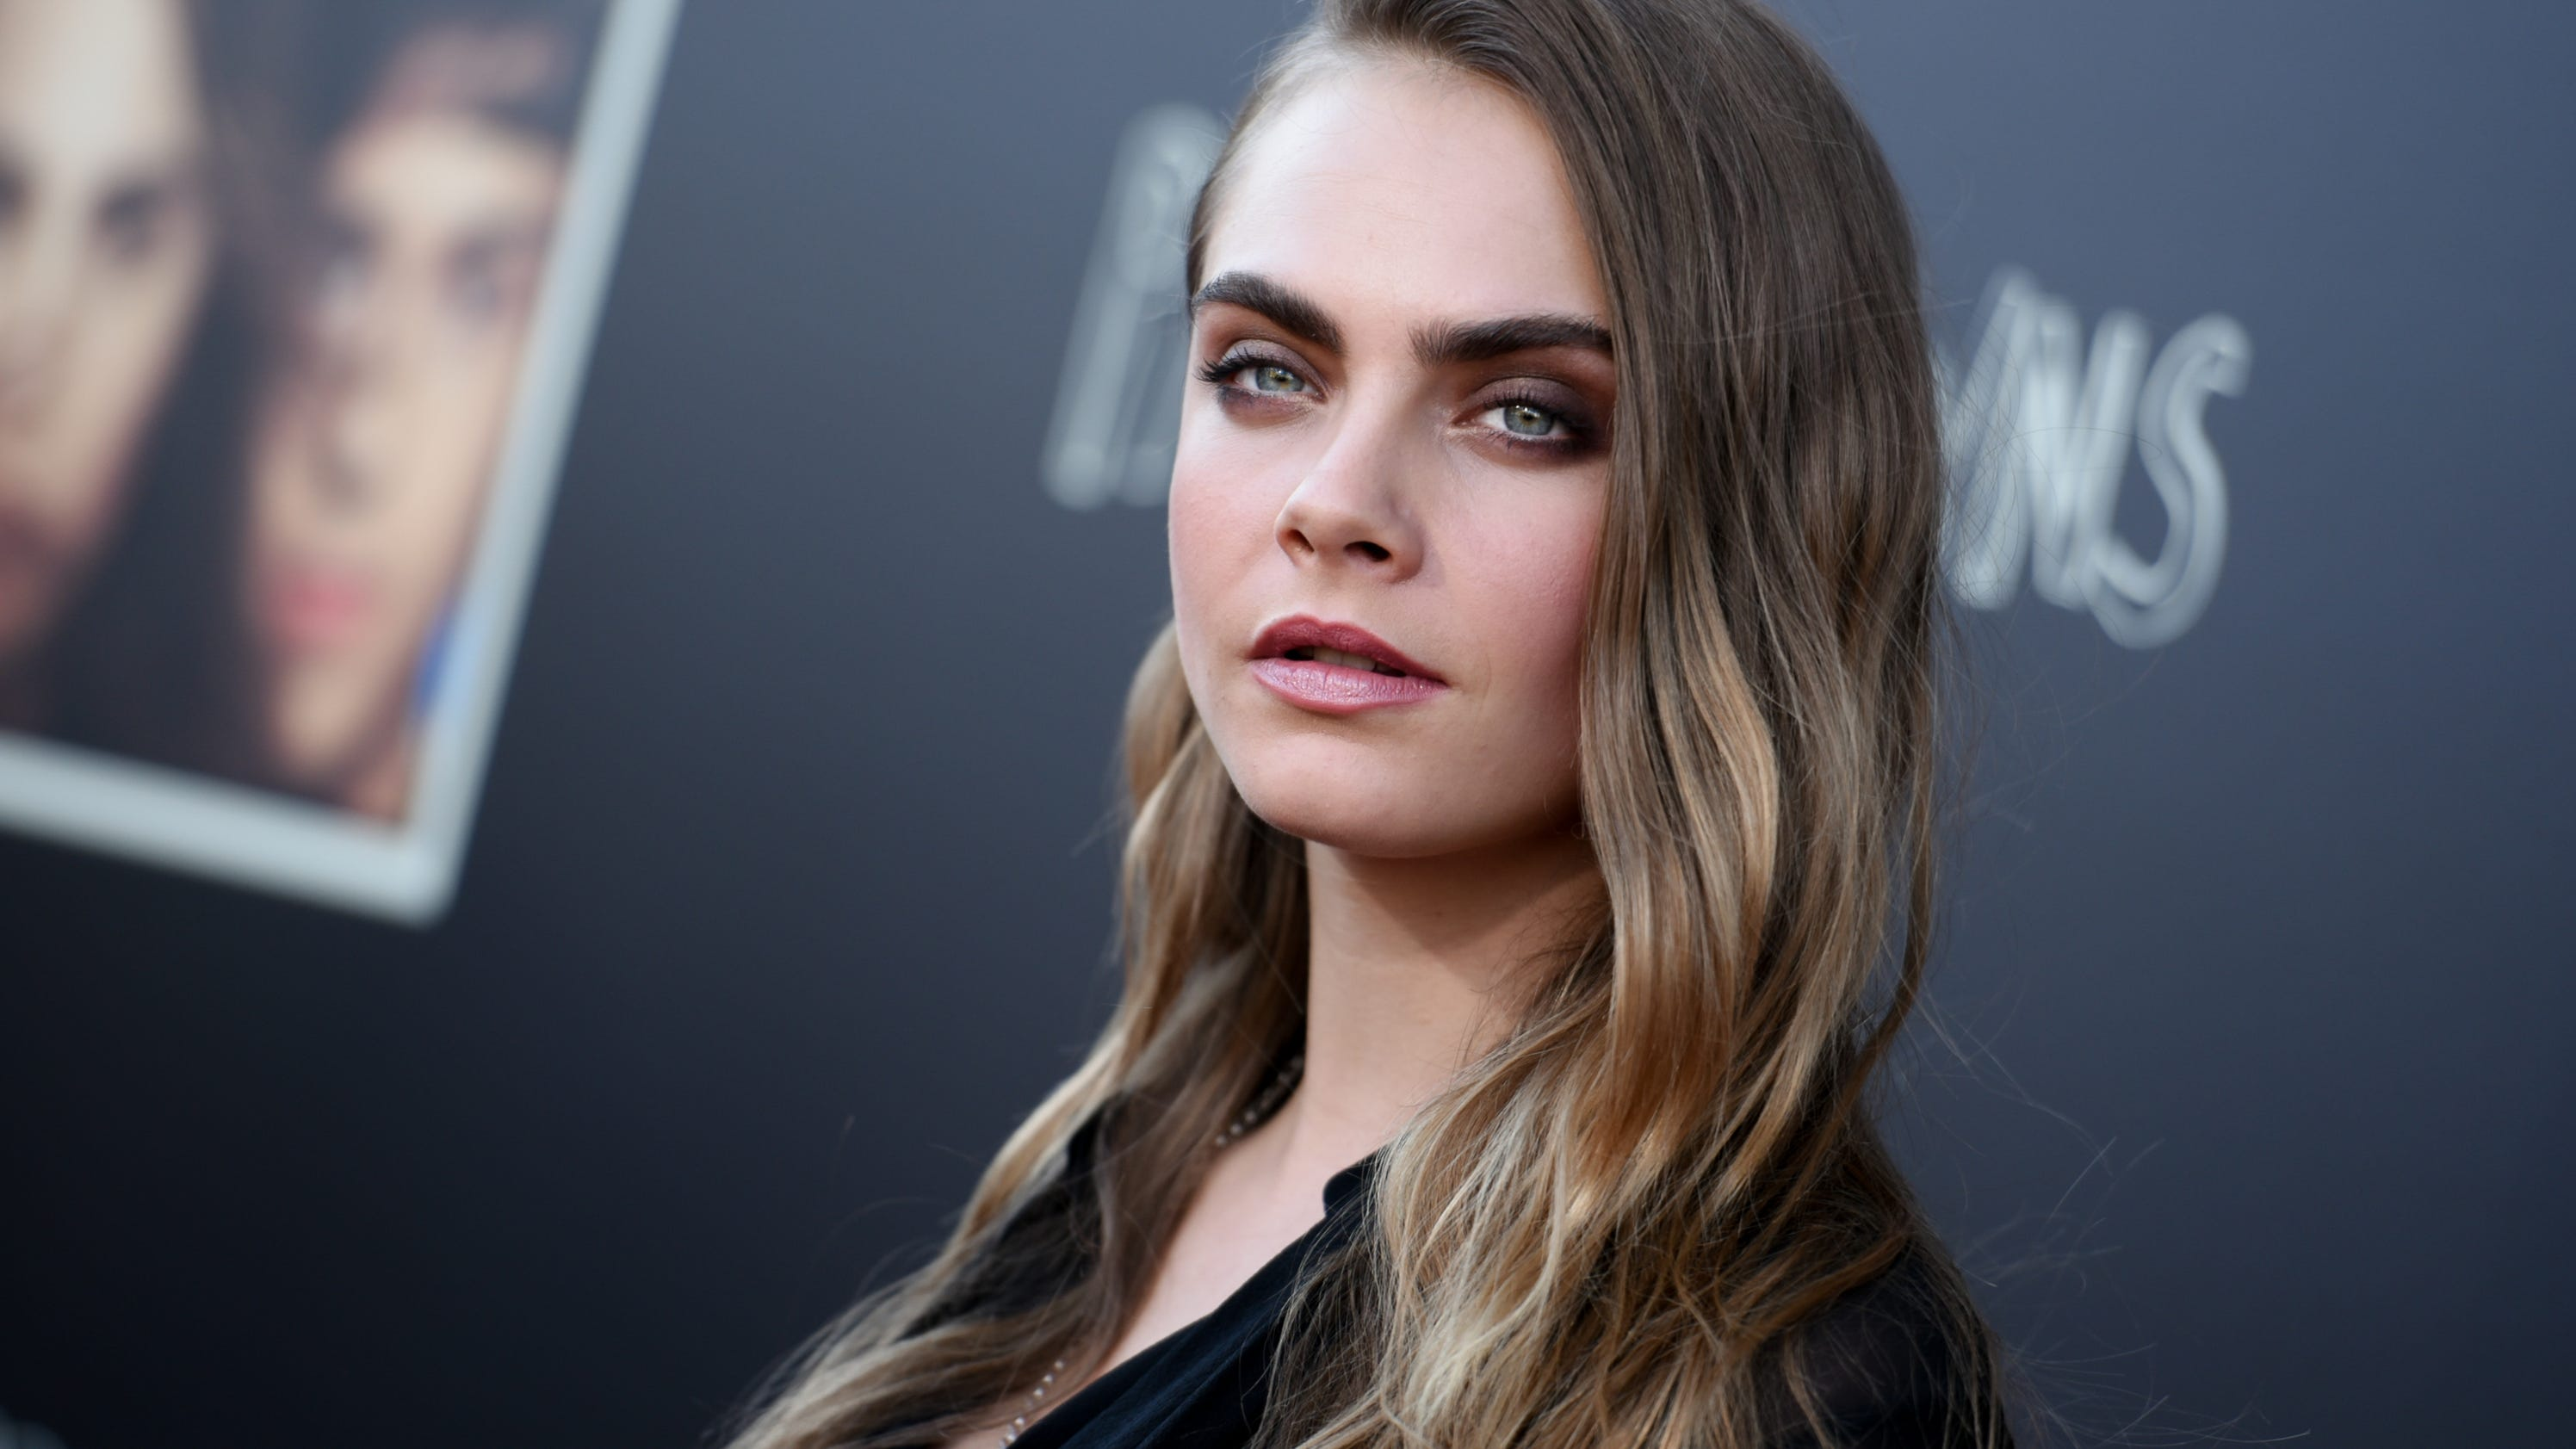 She's back! Cara Delevingne is the new face of YSL